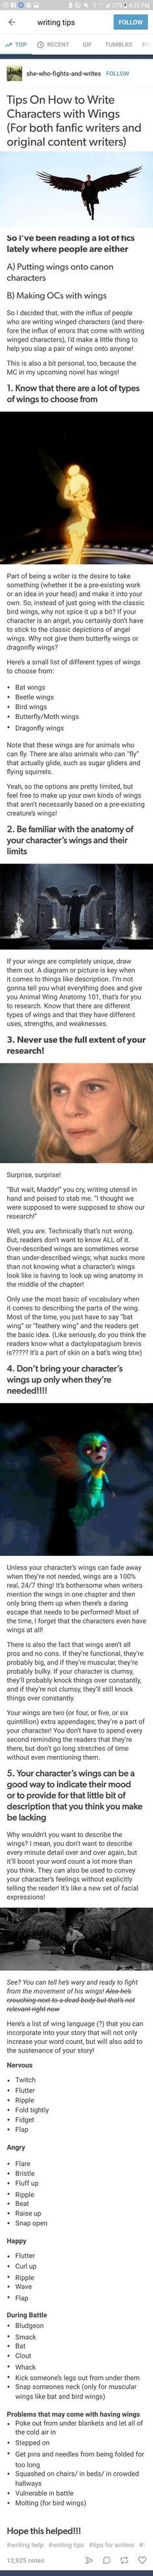 Writing about wings